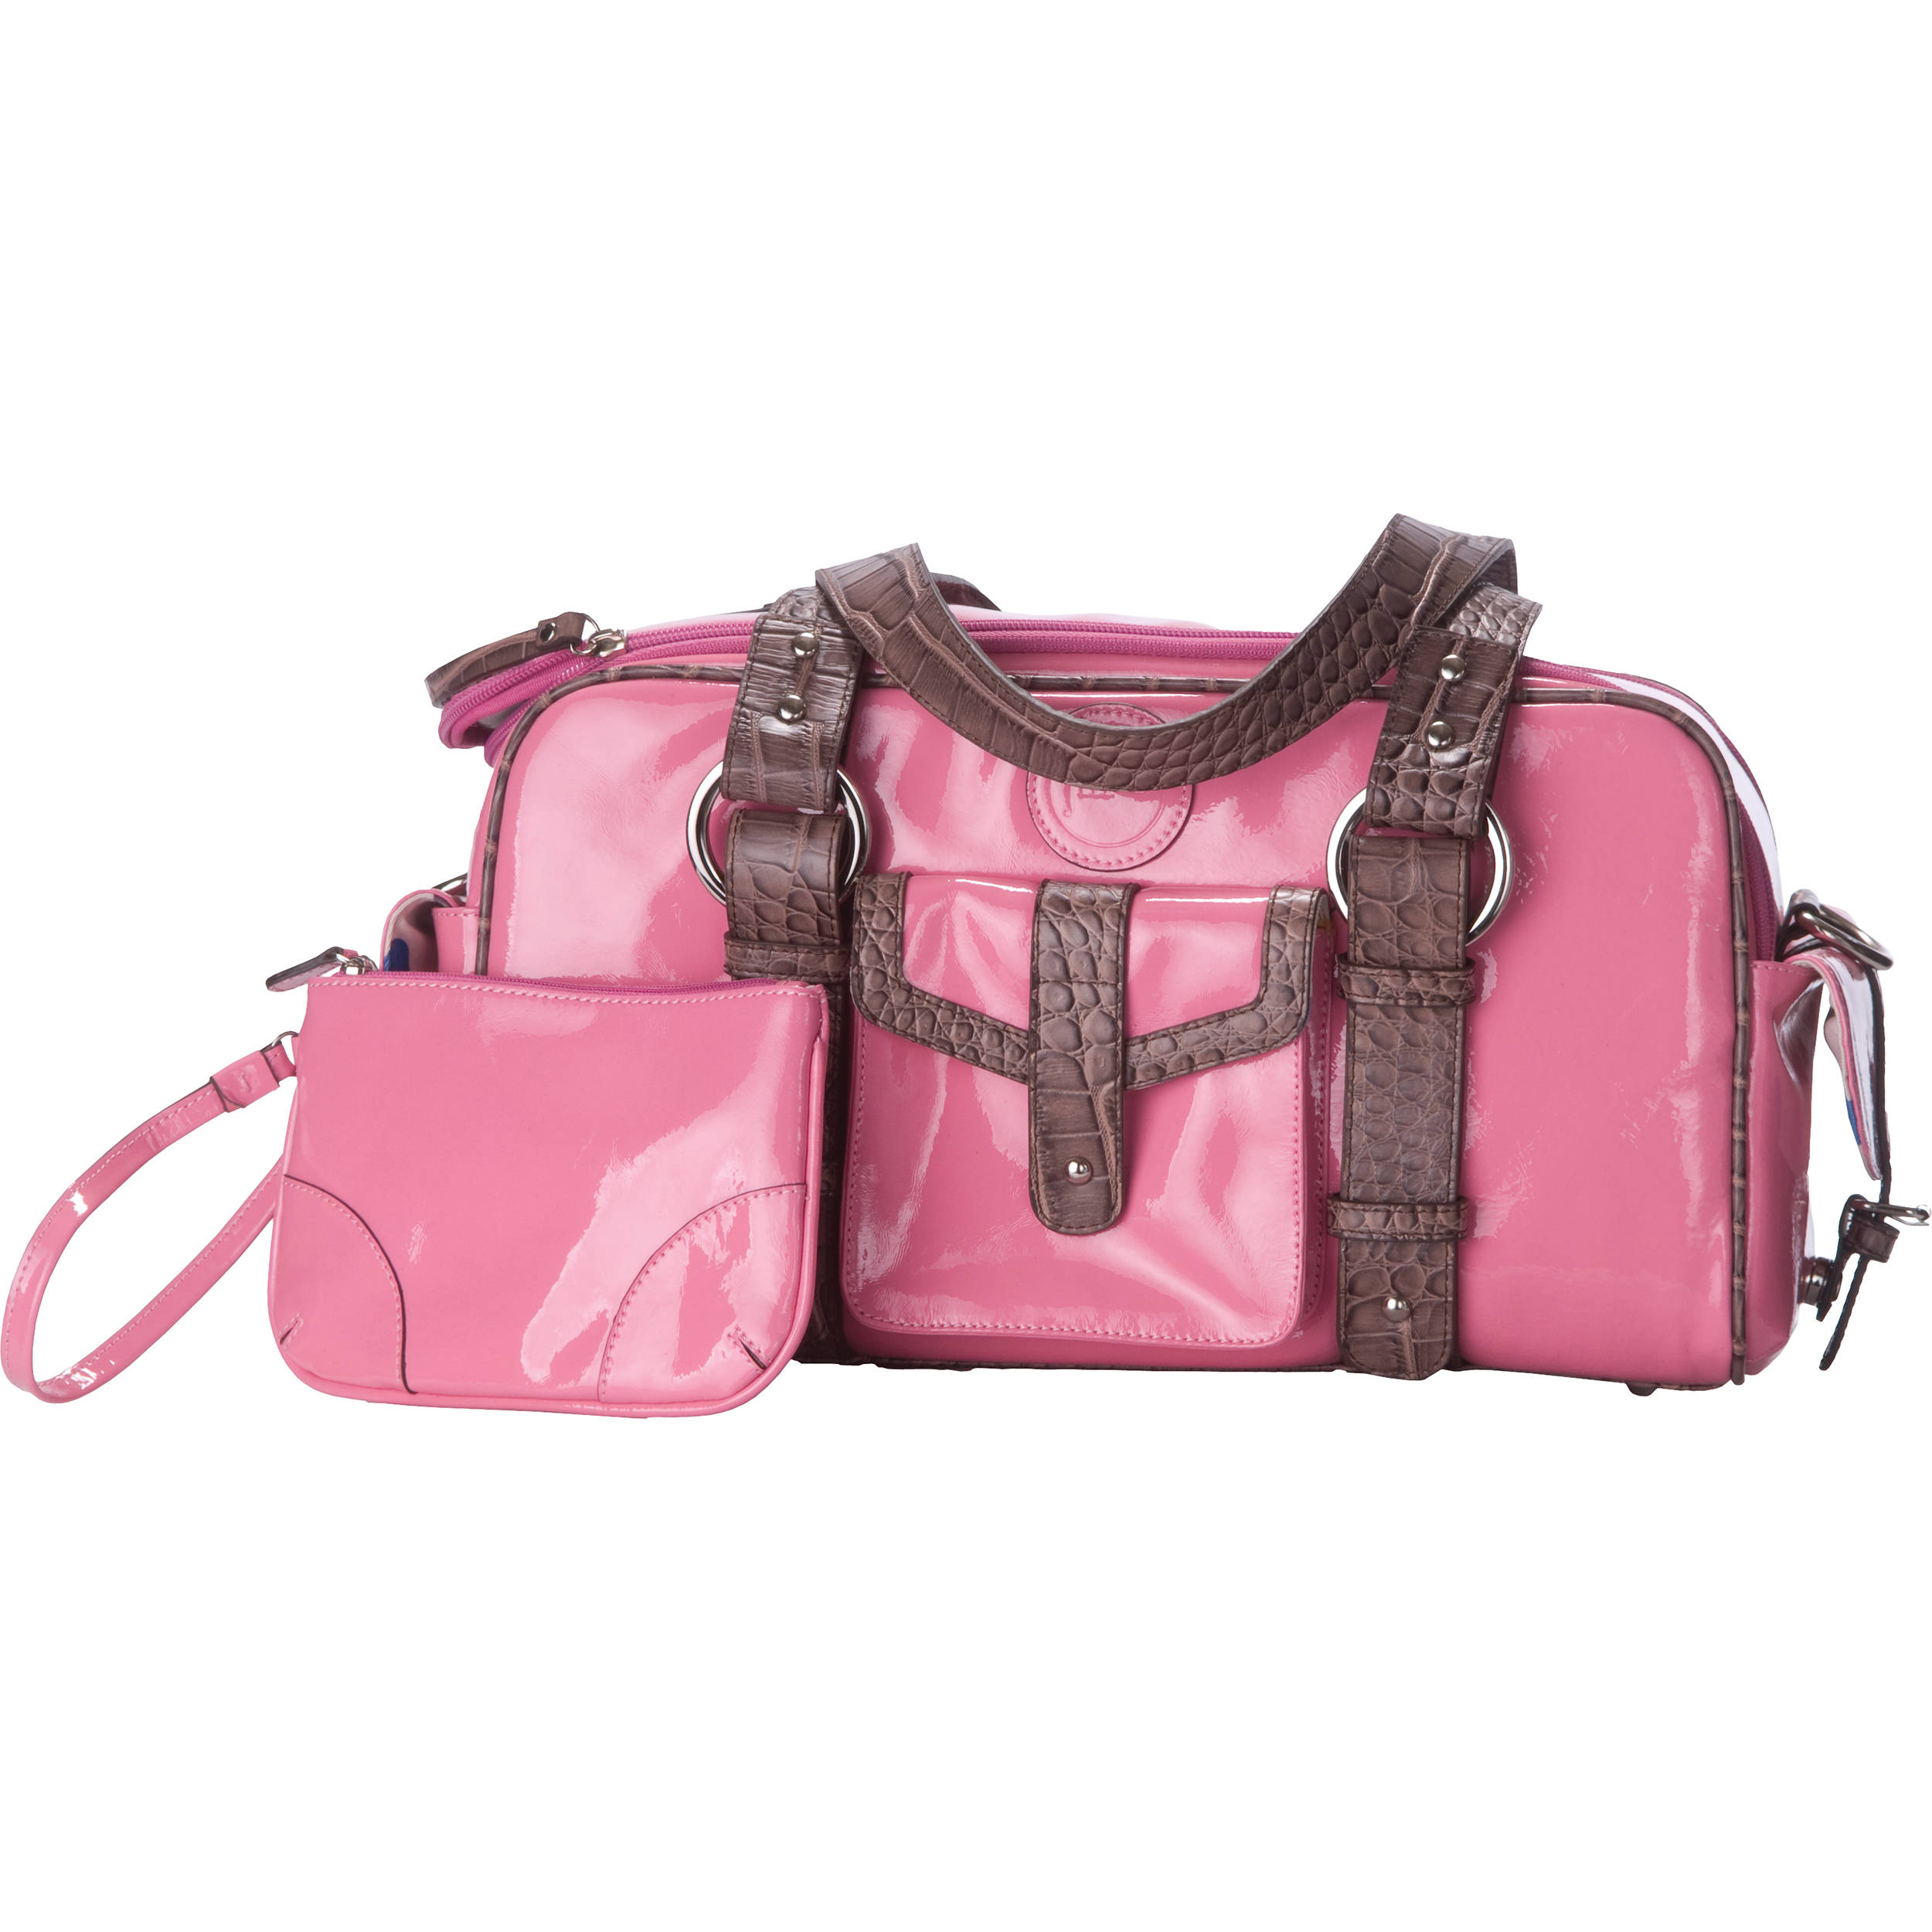 Jill E Designs Small Camera Bag Pink With Brown Trim